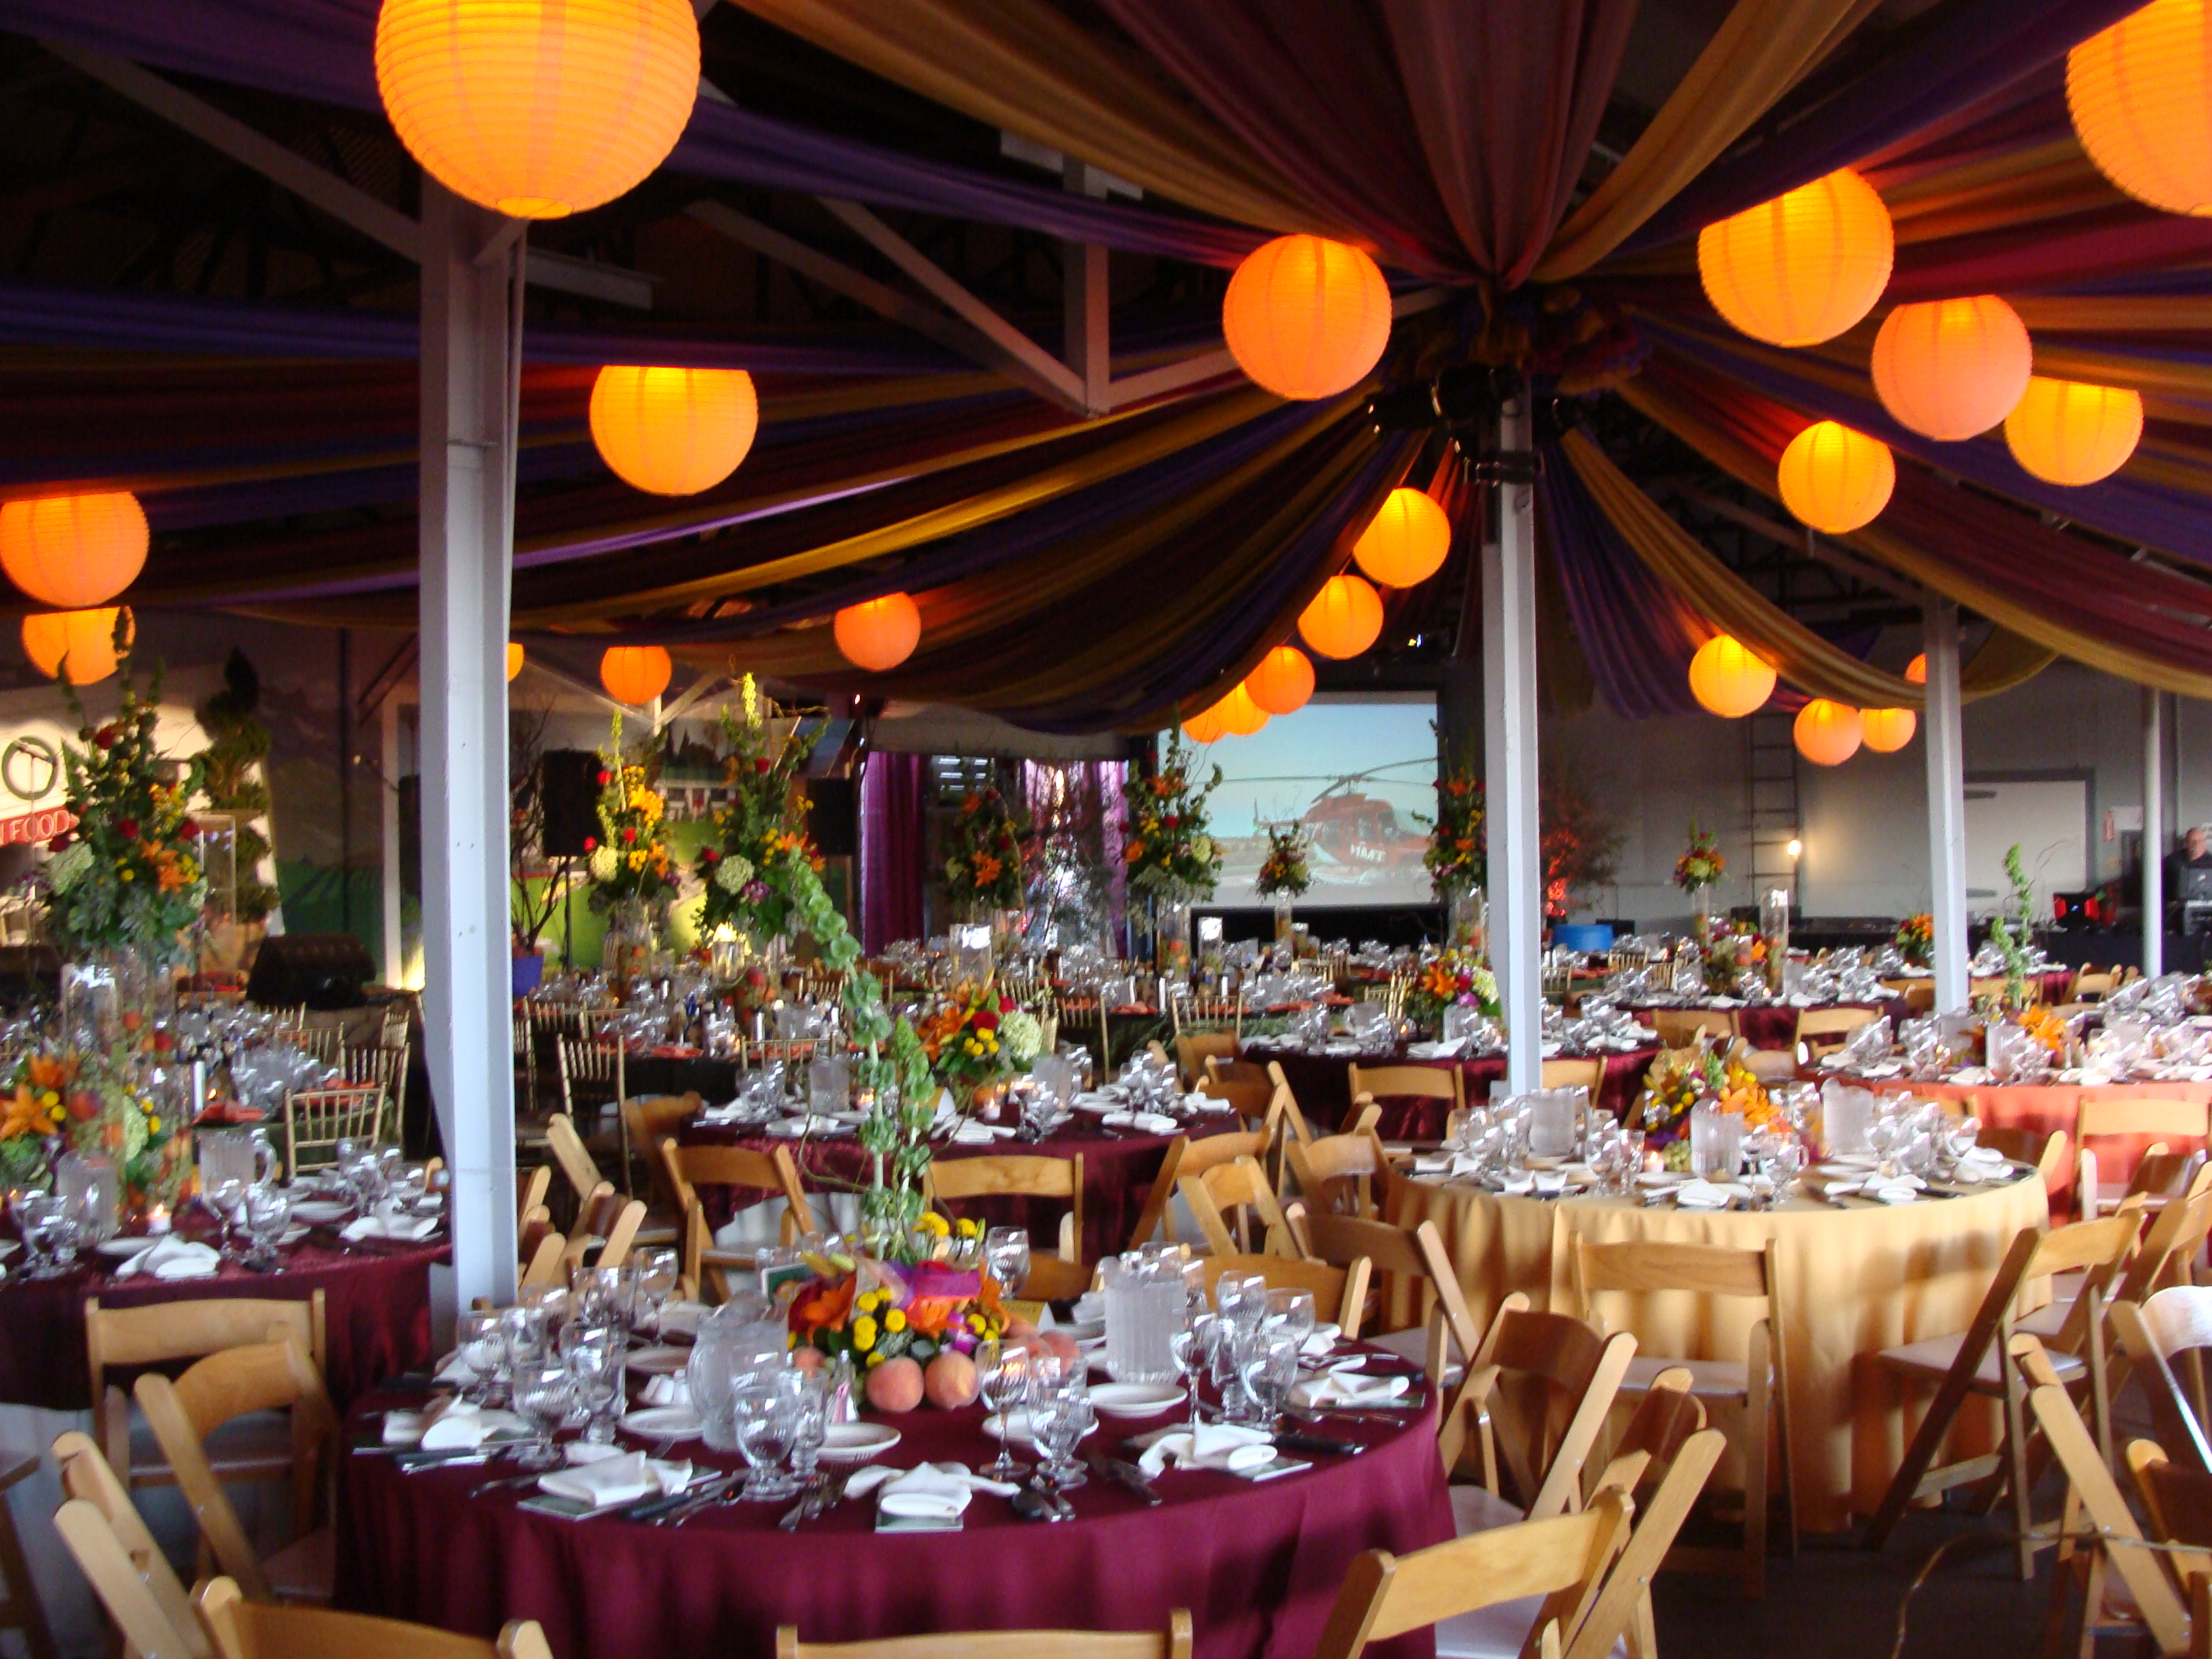 VC Harvest Ball Lanterns & Draping